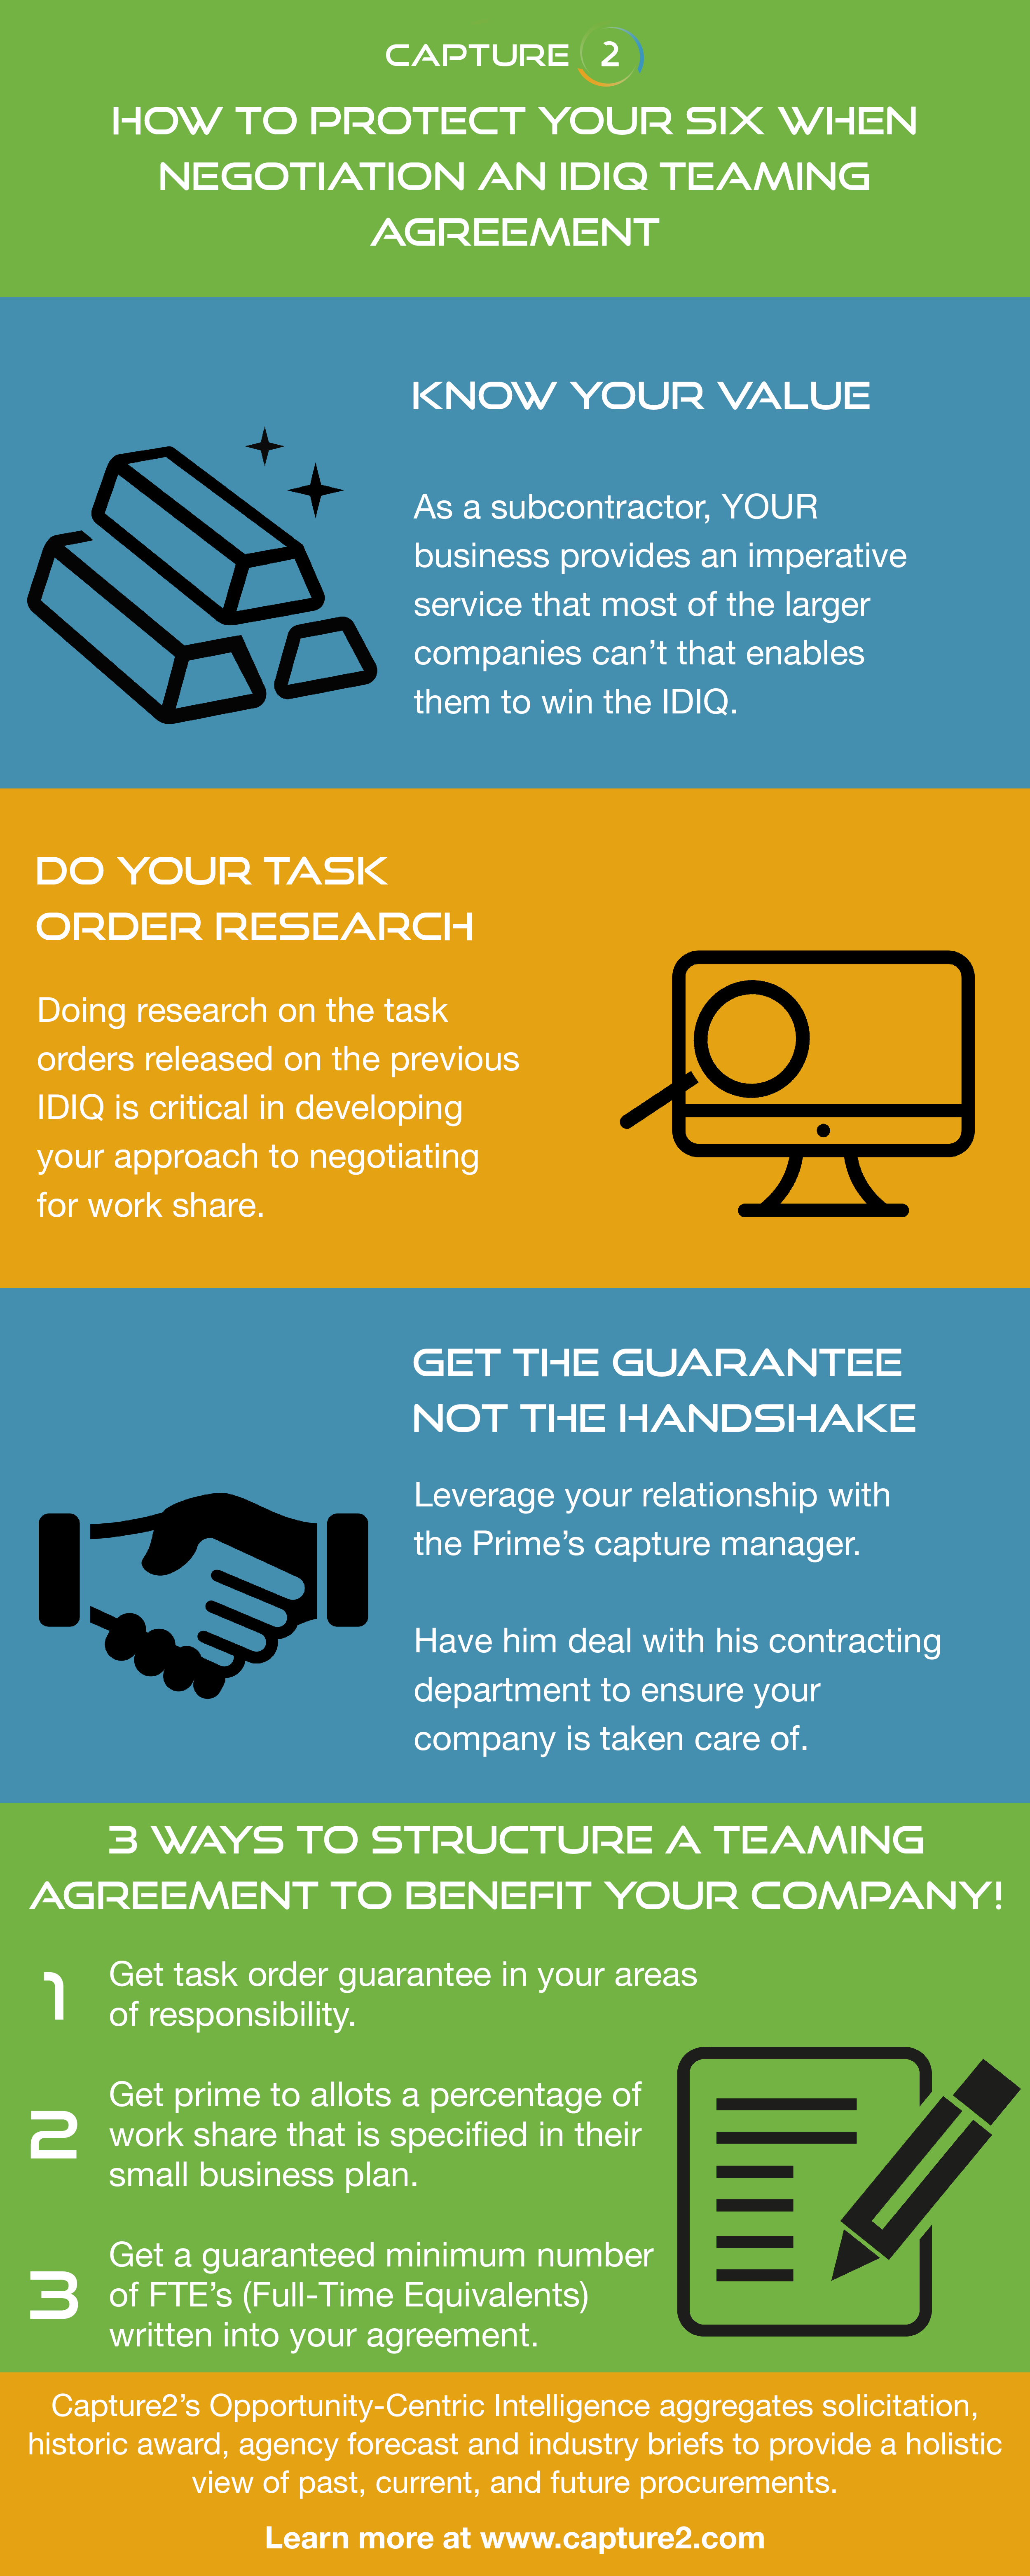 4 ways to achieve a better IDIQ Teaming Agreement